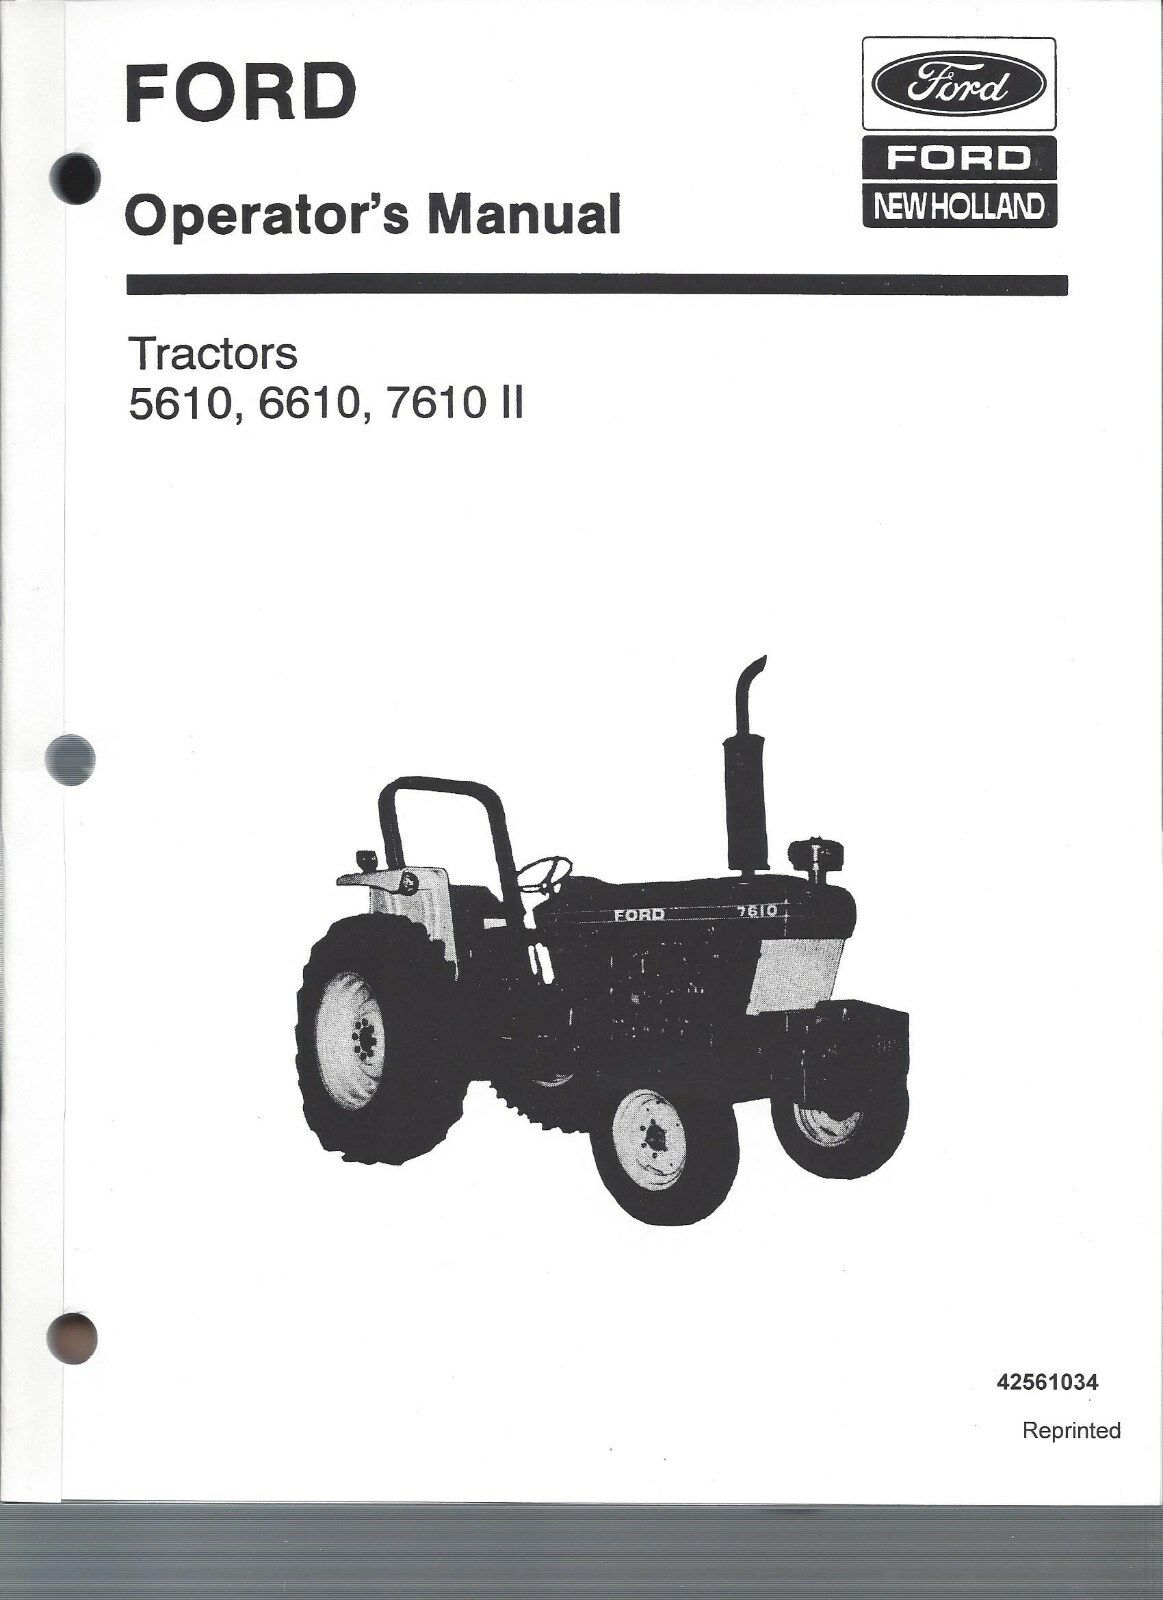 FORD 5610, 6610, 7610 Tractor Operators Manual, Series II, 1985 to 1993 1  of 1Only 1 available ...